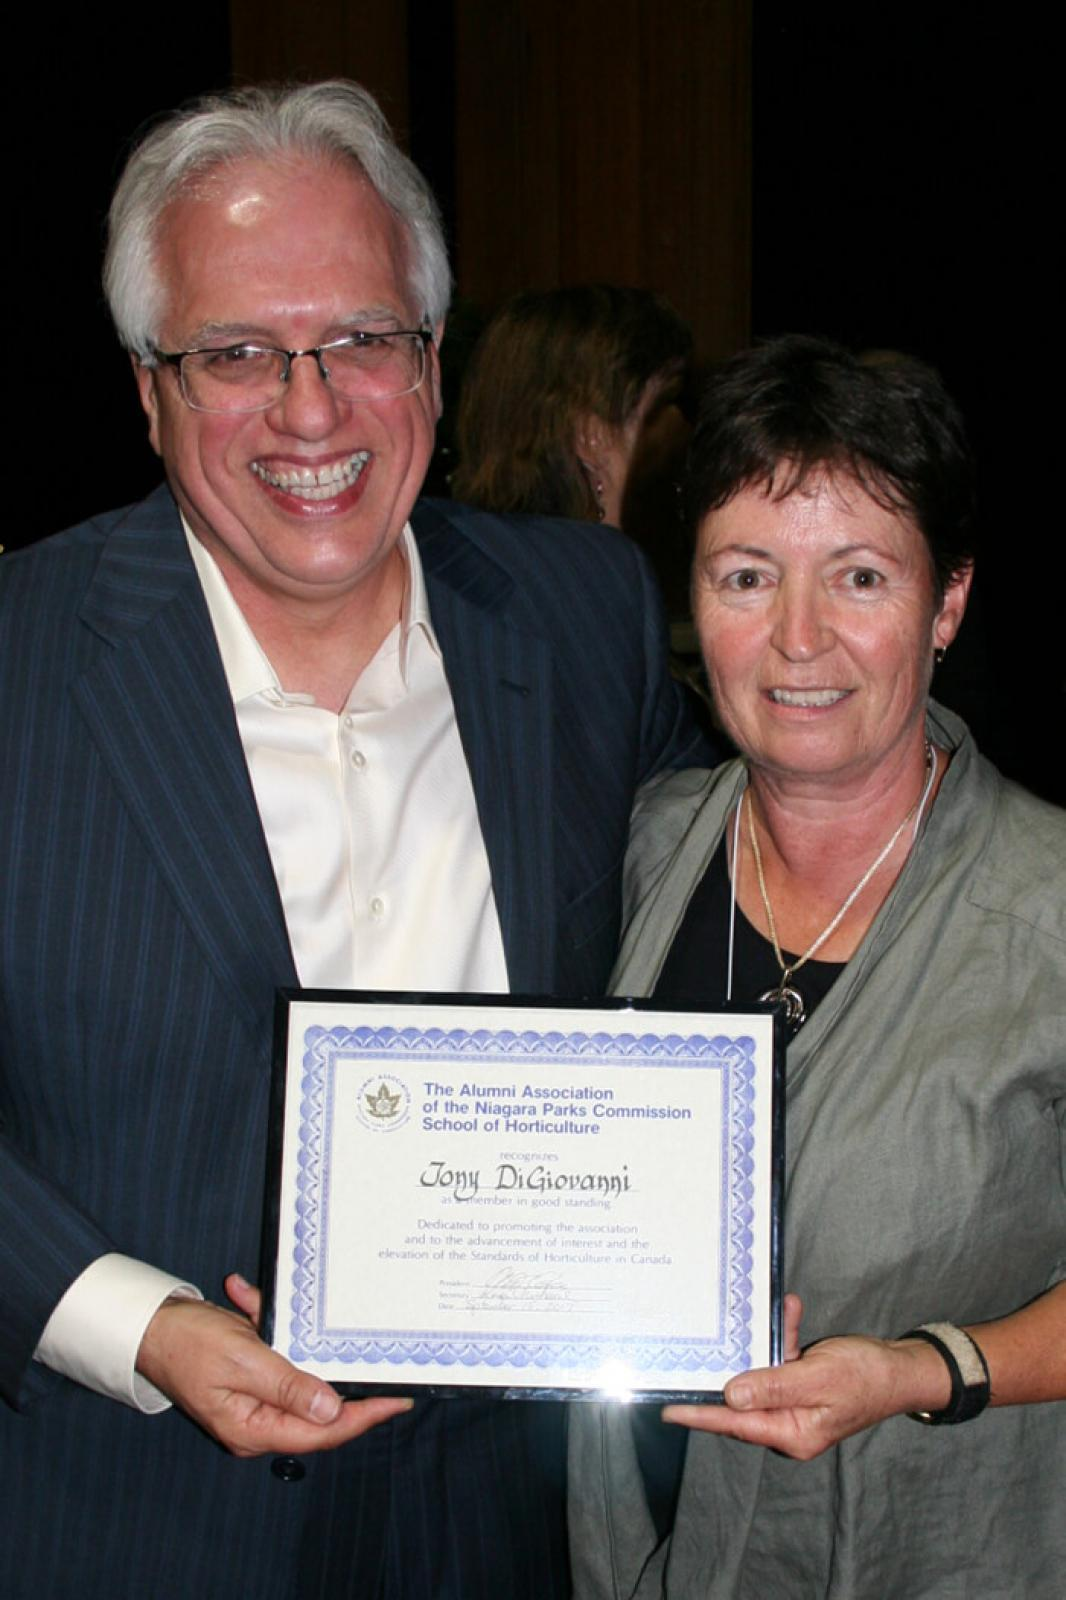 Tony DiGiovanni with Karen Michaud, executive director, Alumni Association of the Niagara Parks School of Horticulture.